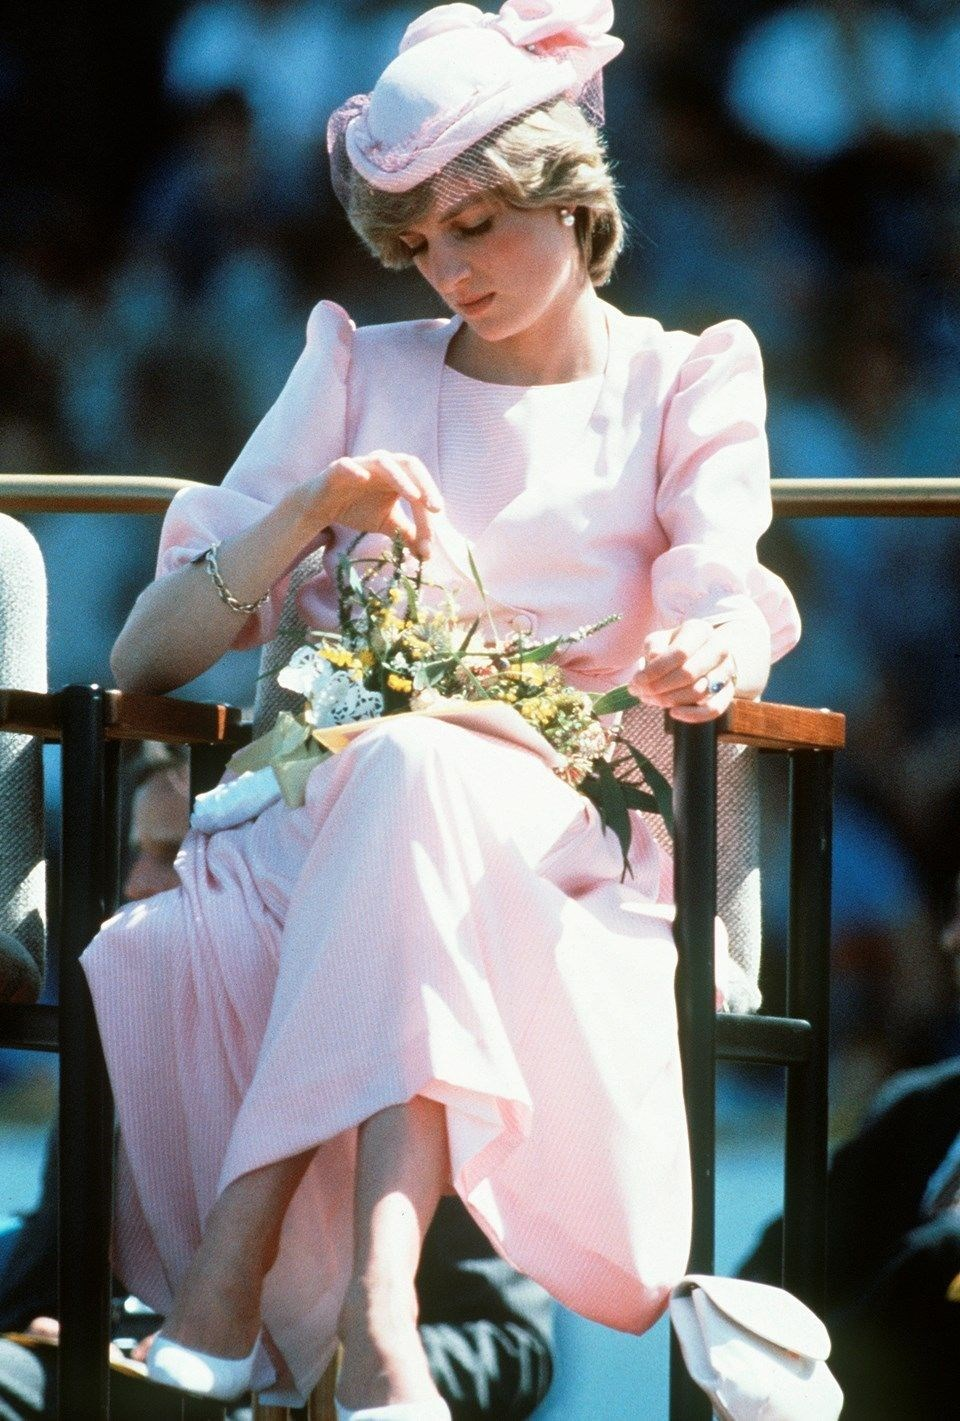 Prenses Diana - Lady Diana Spencer